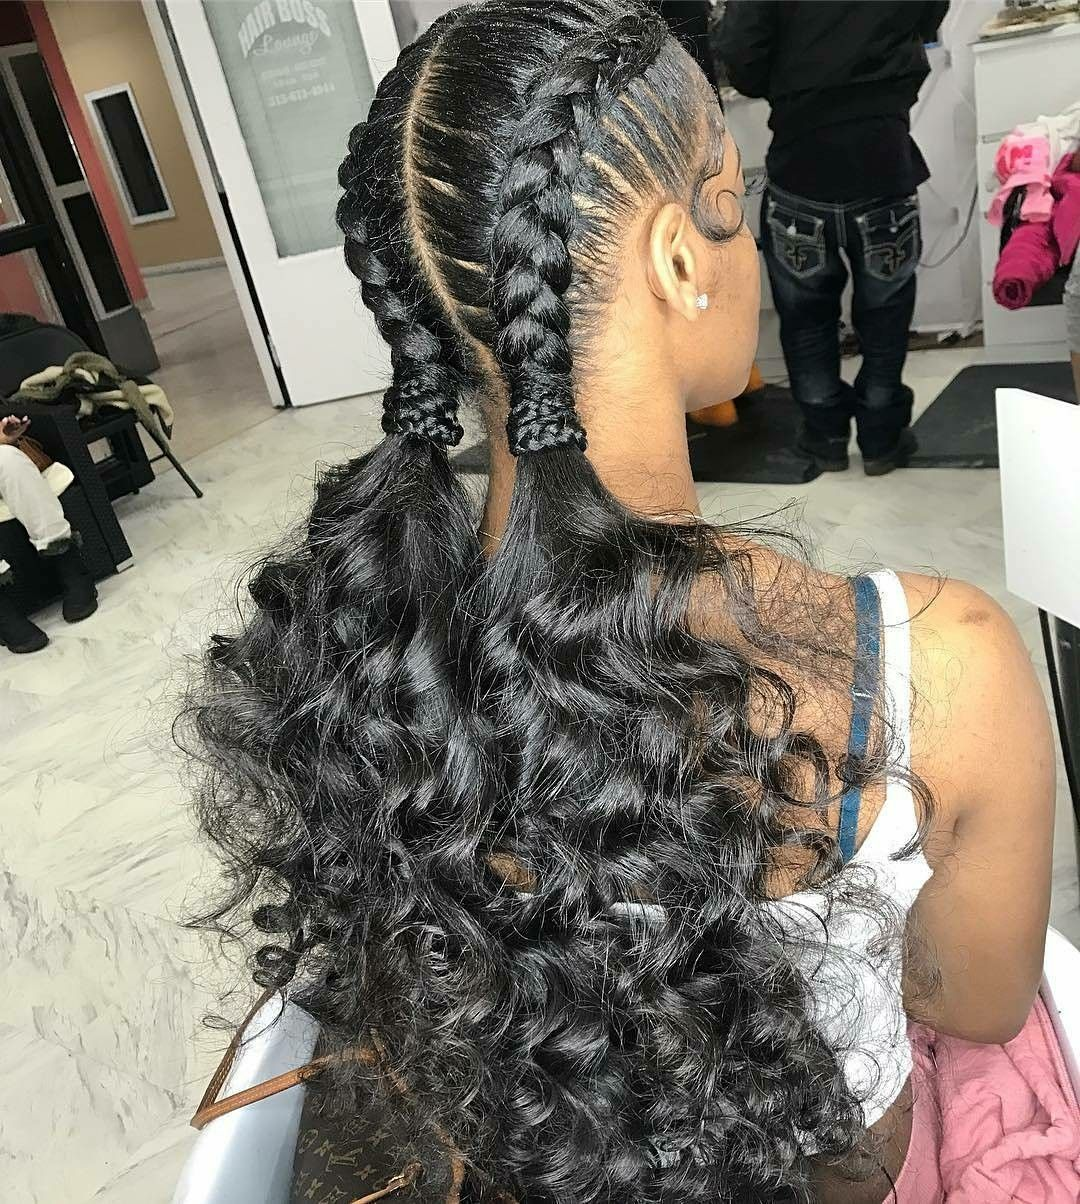 Best Braids Hairstyle You Like Braidedhairstyles Feed In Braids Hairstyles Weave Hairstyles Braided Braided Hairstyles